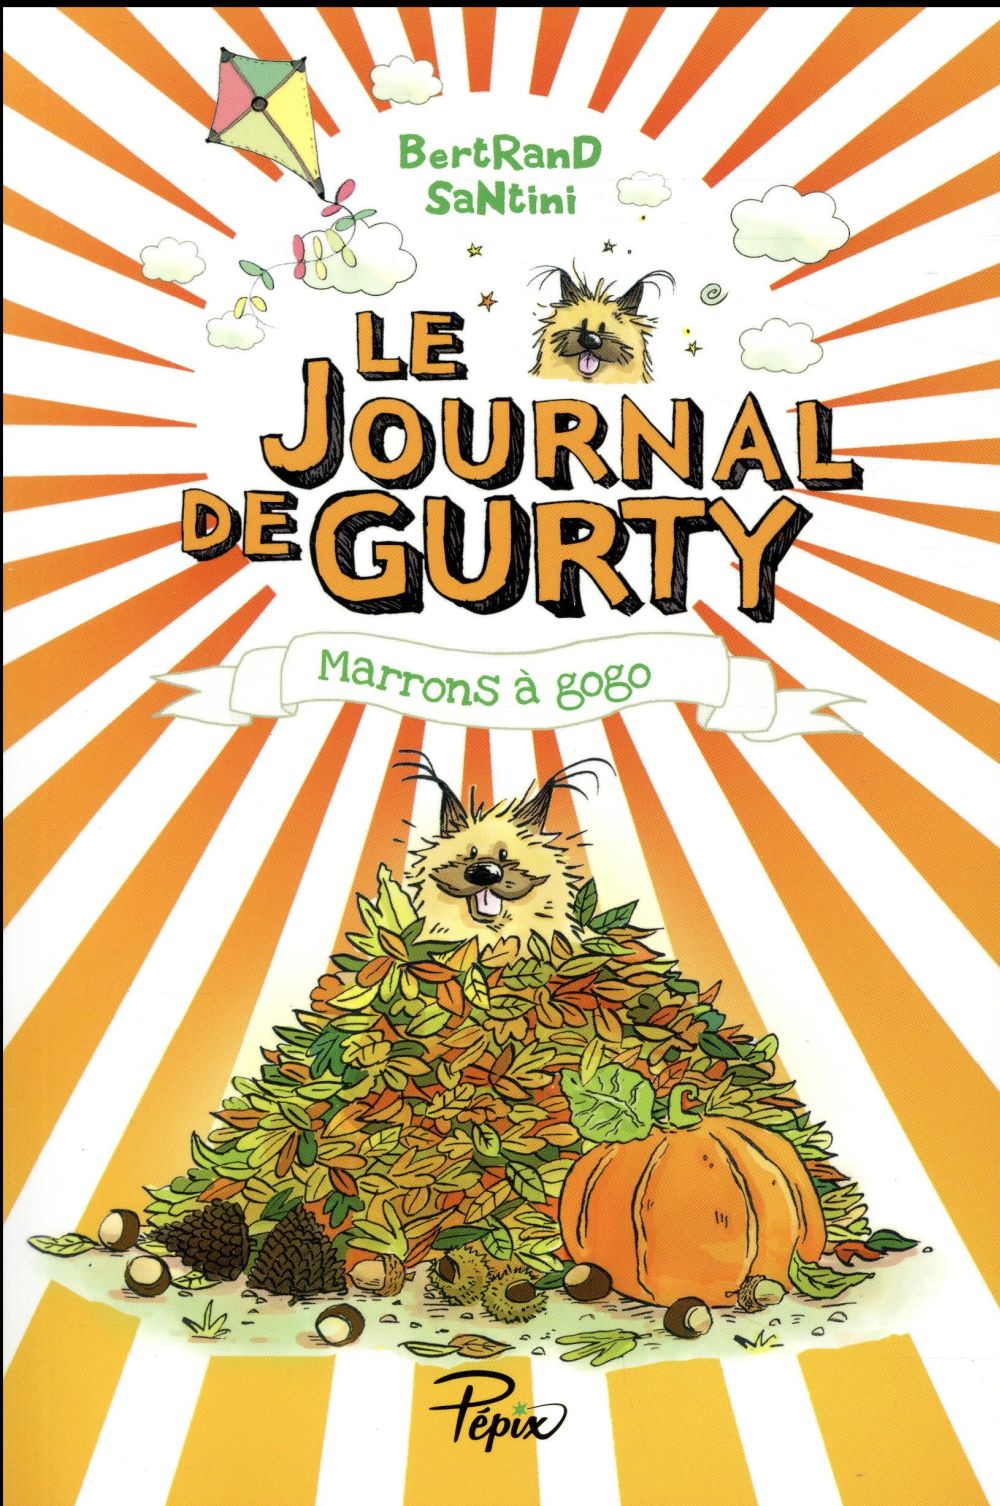 Le journal de Gurty Marrons à gogo Vol.3